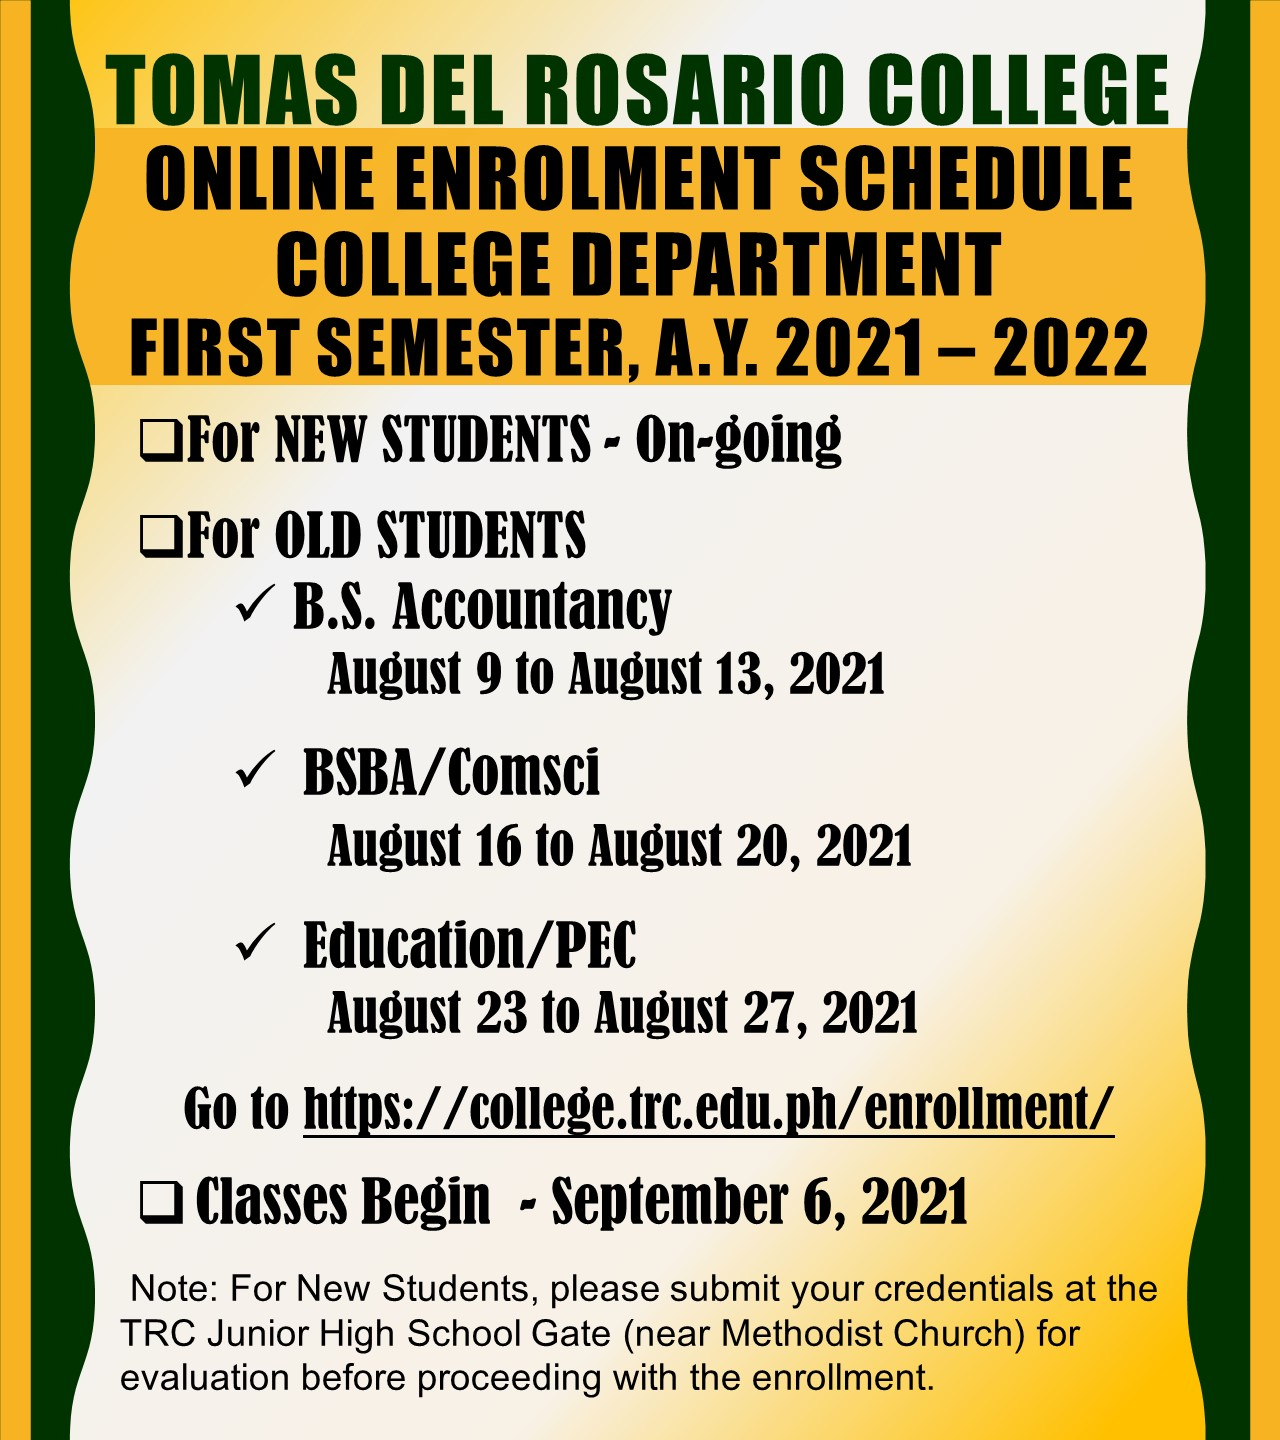 COLLEGE DEPARTMENT ONLINE ENROLLMENT FIRST SEMESTER A.Y. 2021 - 2022